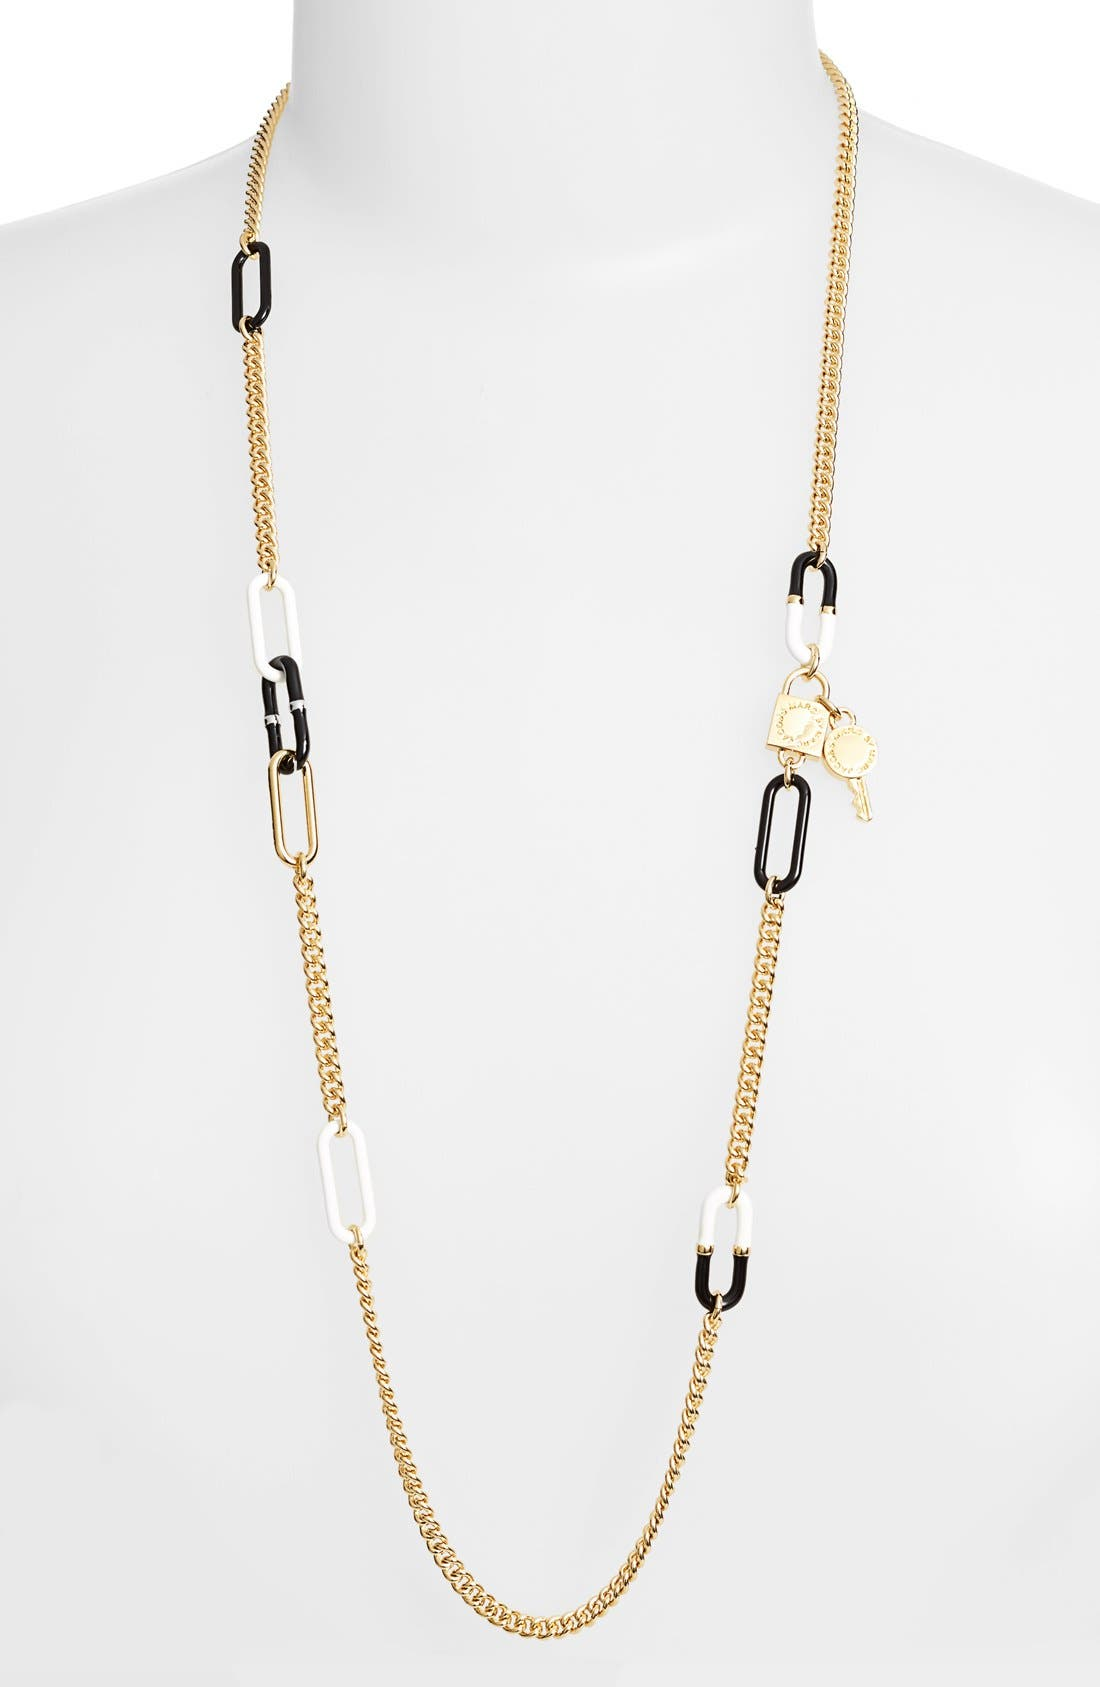 Main Image - MARC BY MARC JACOBS 'Ferus' Link Station Necklace